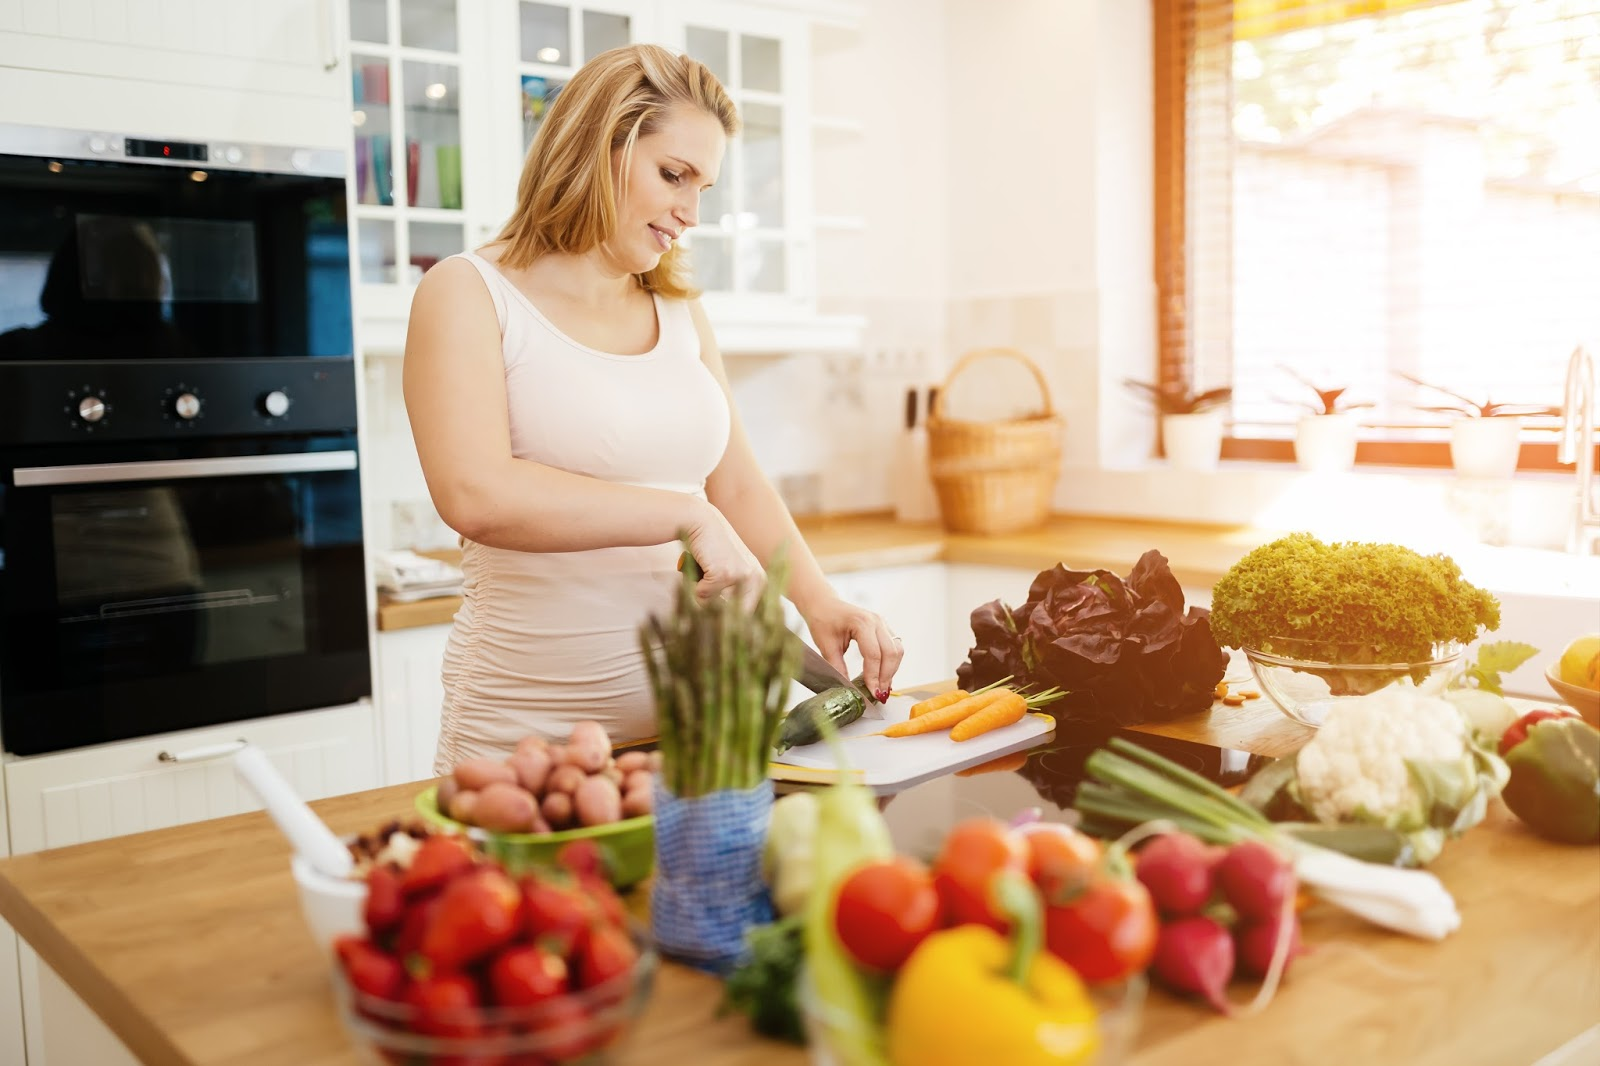 Pregnant woman preparing a healthy meal